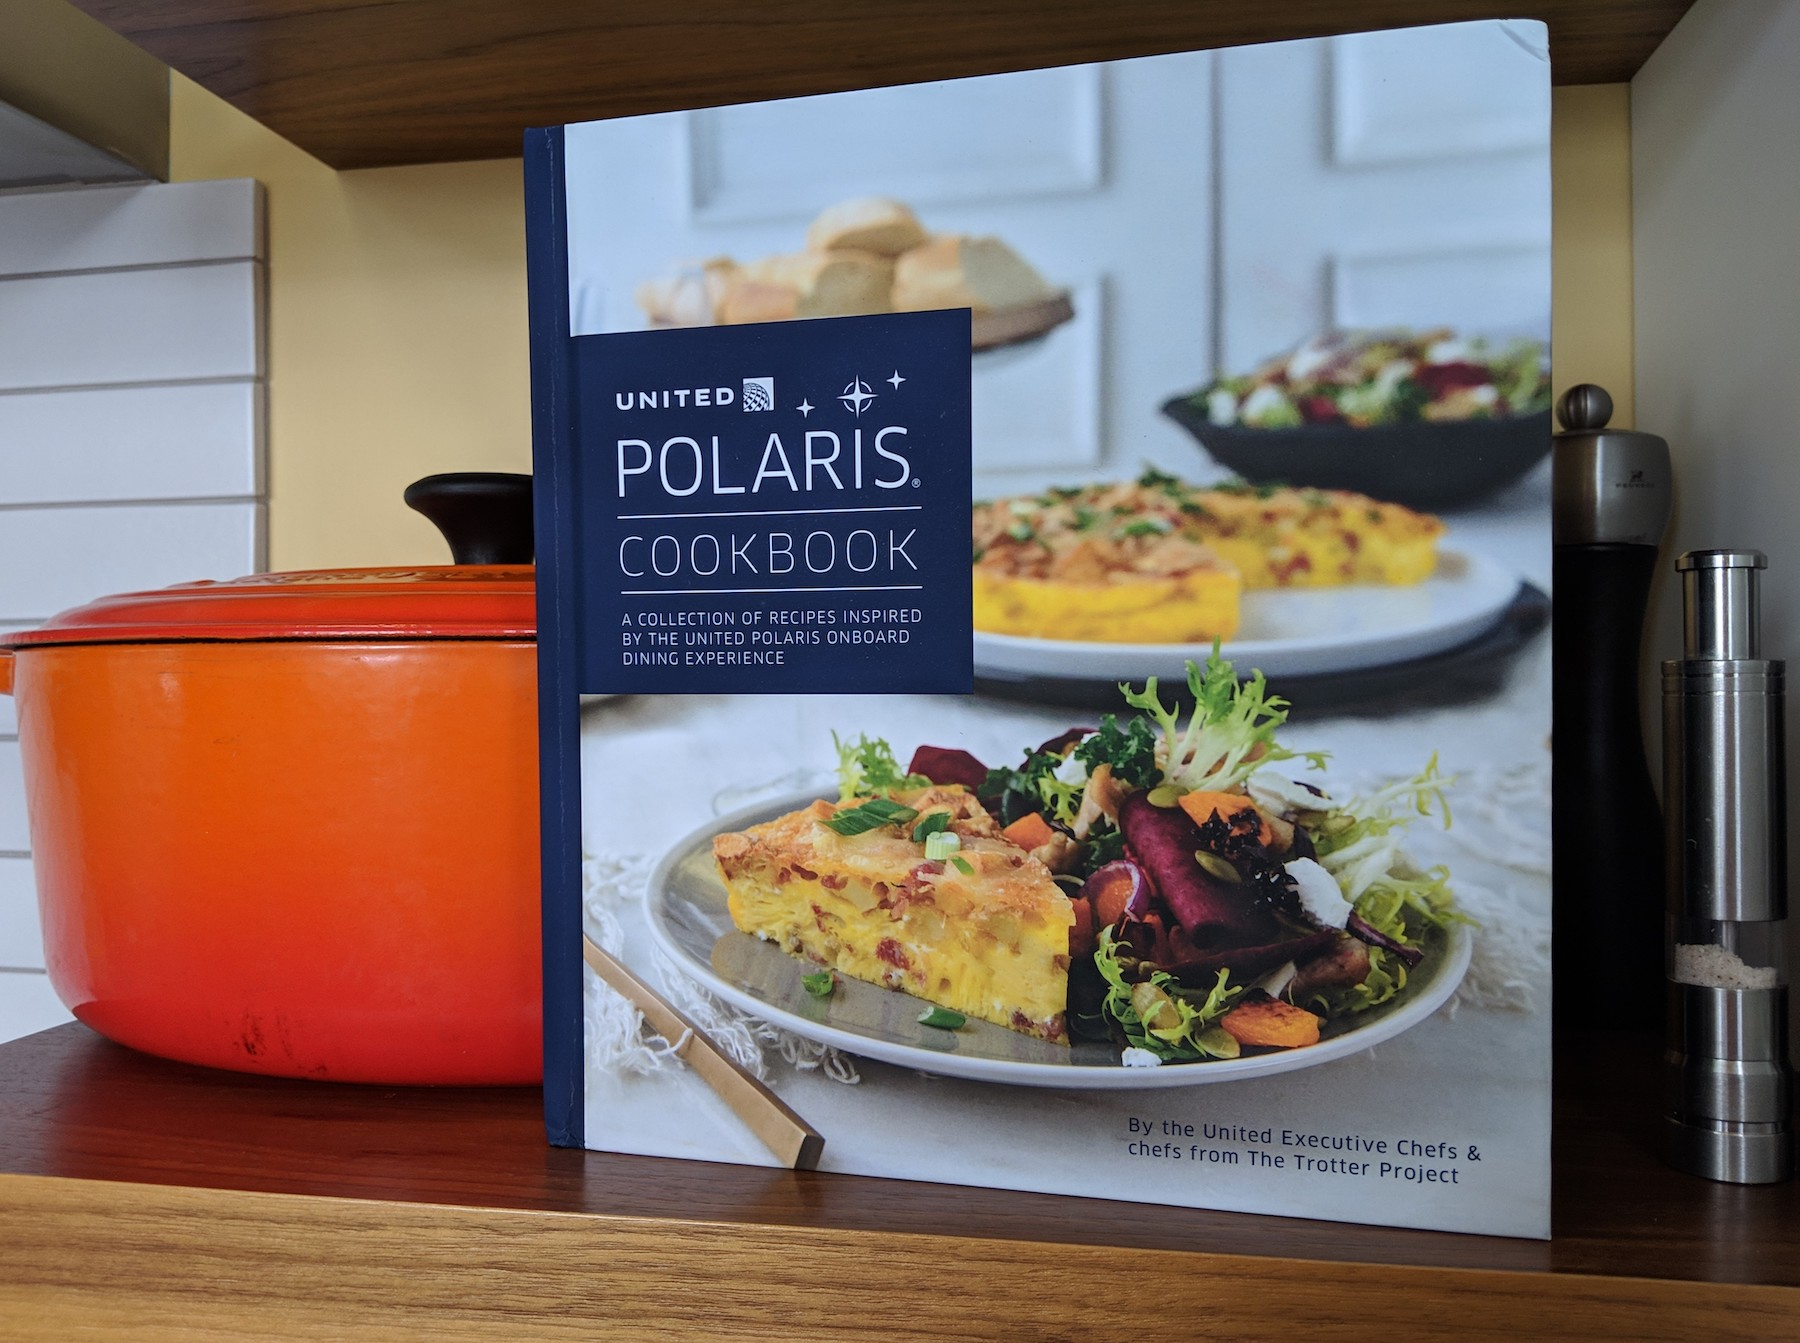 Choose Our United Polaris Cooking Adventure One Mile At